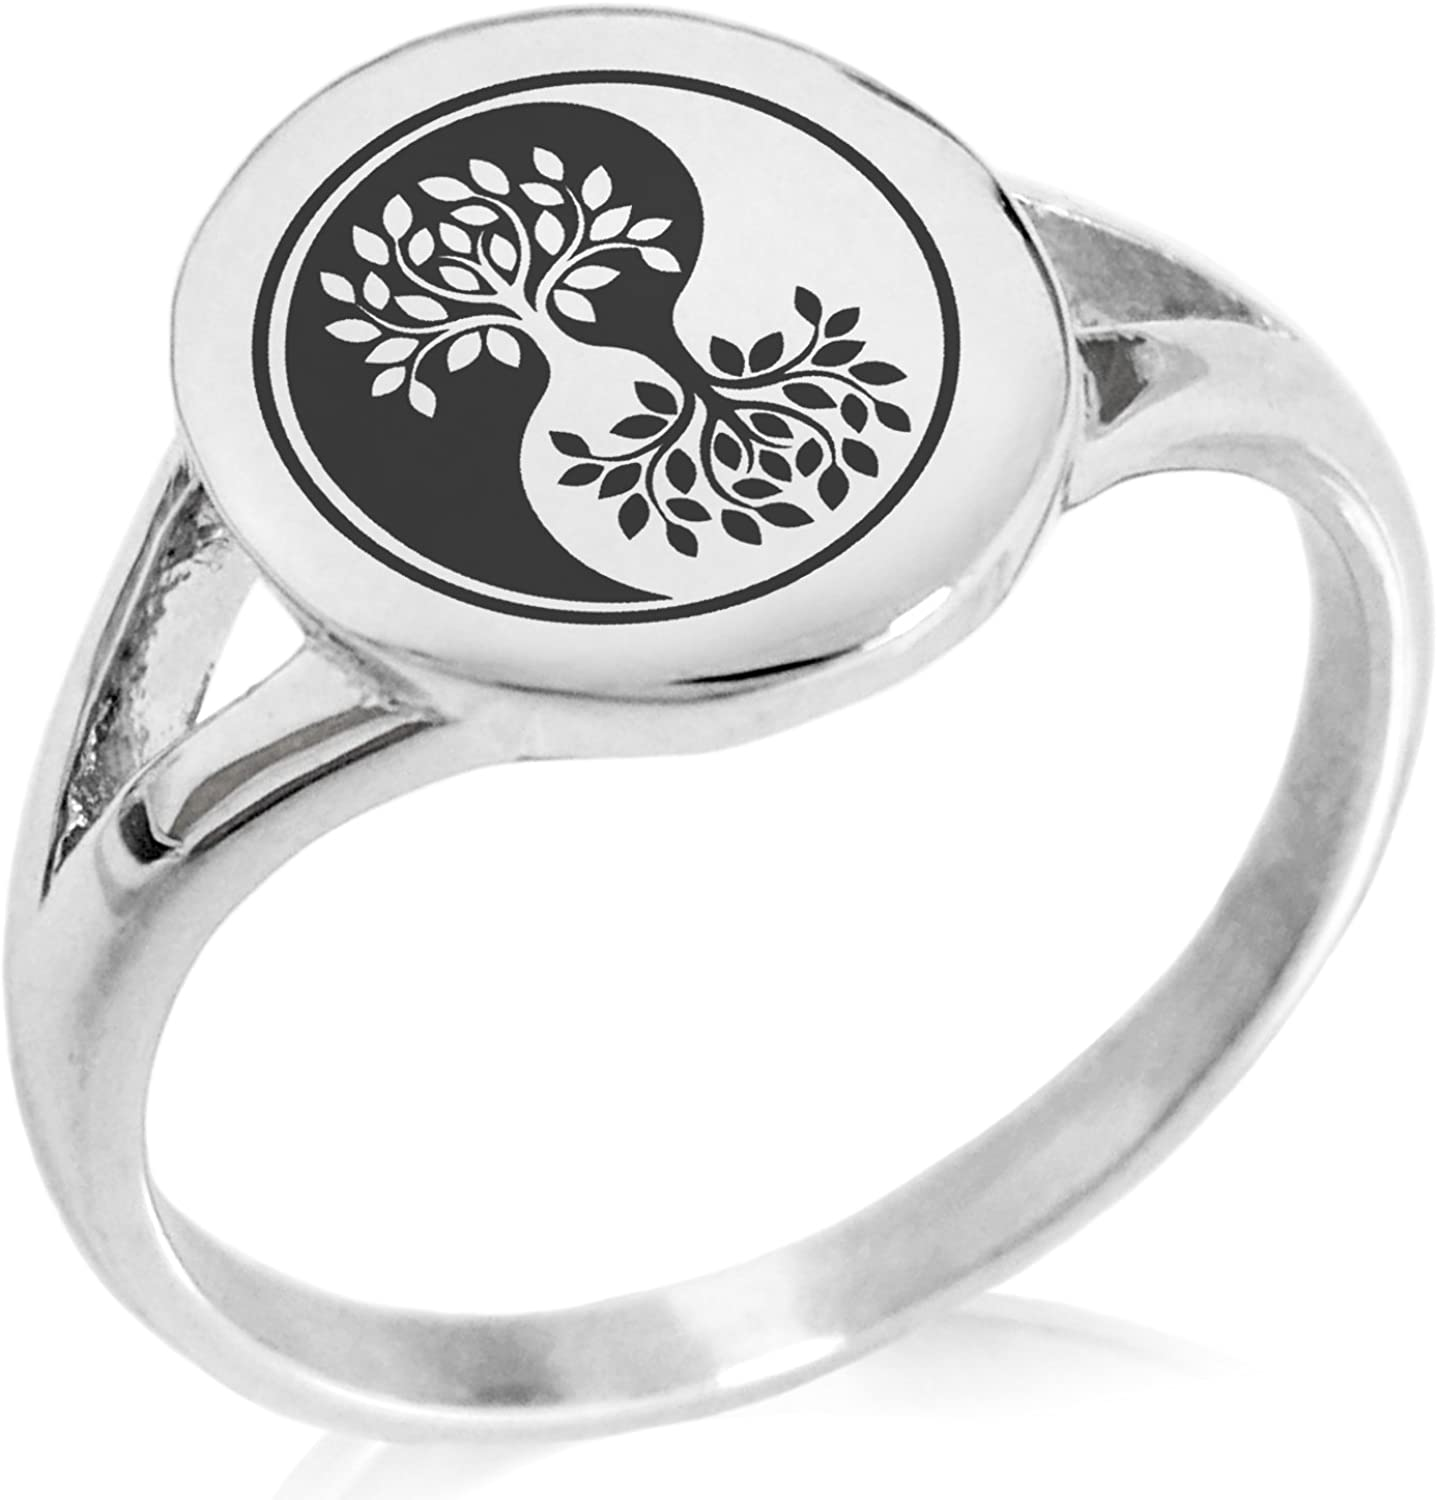 Tioneer Stainless Steel Tree of Life Yin Yang Symbol Minimalist Oval Top Polished Statement Ring